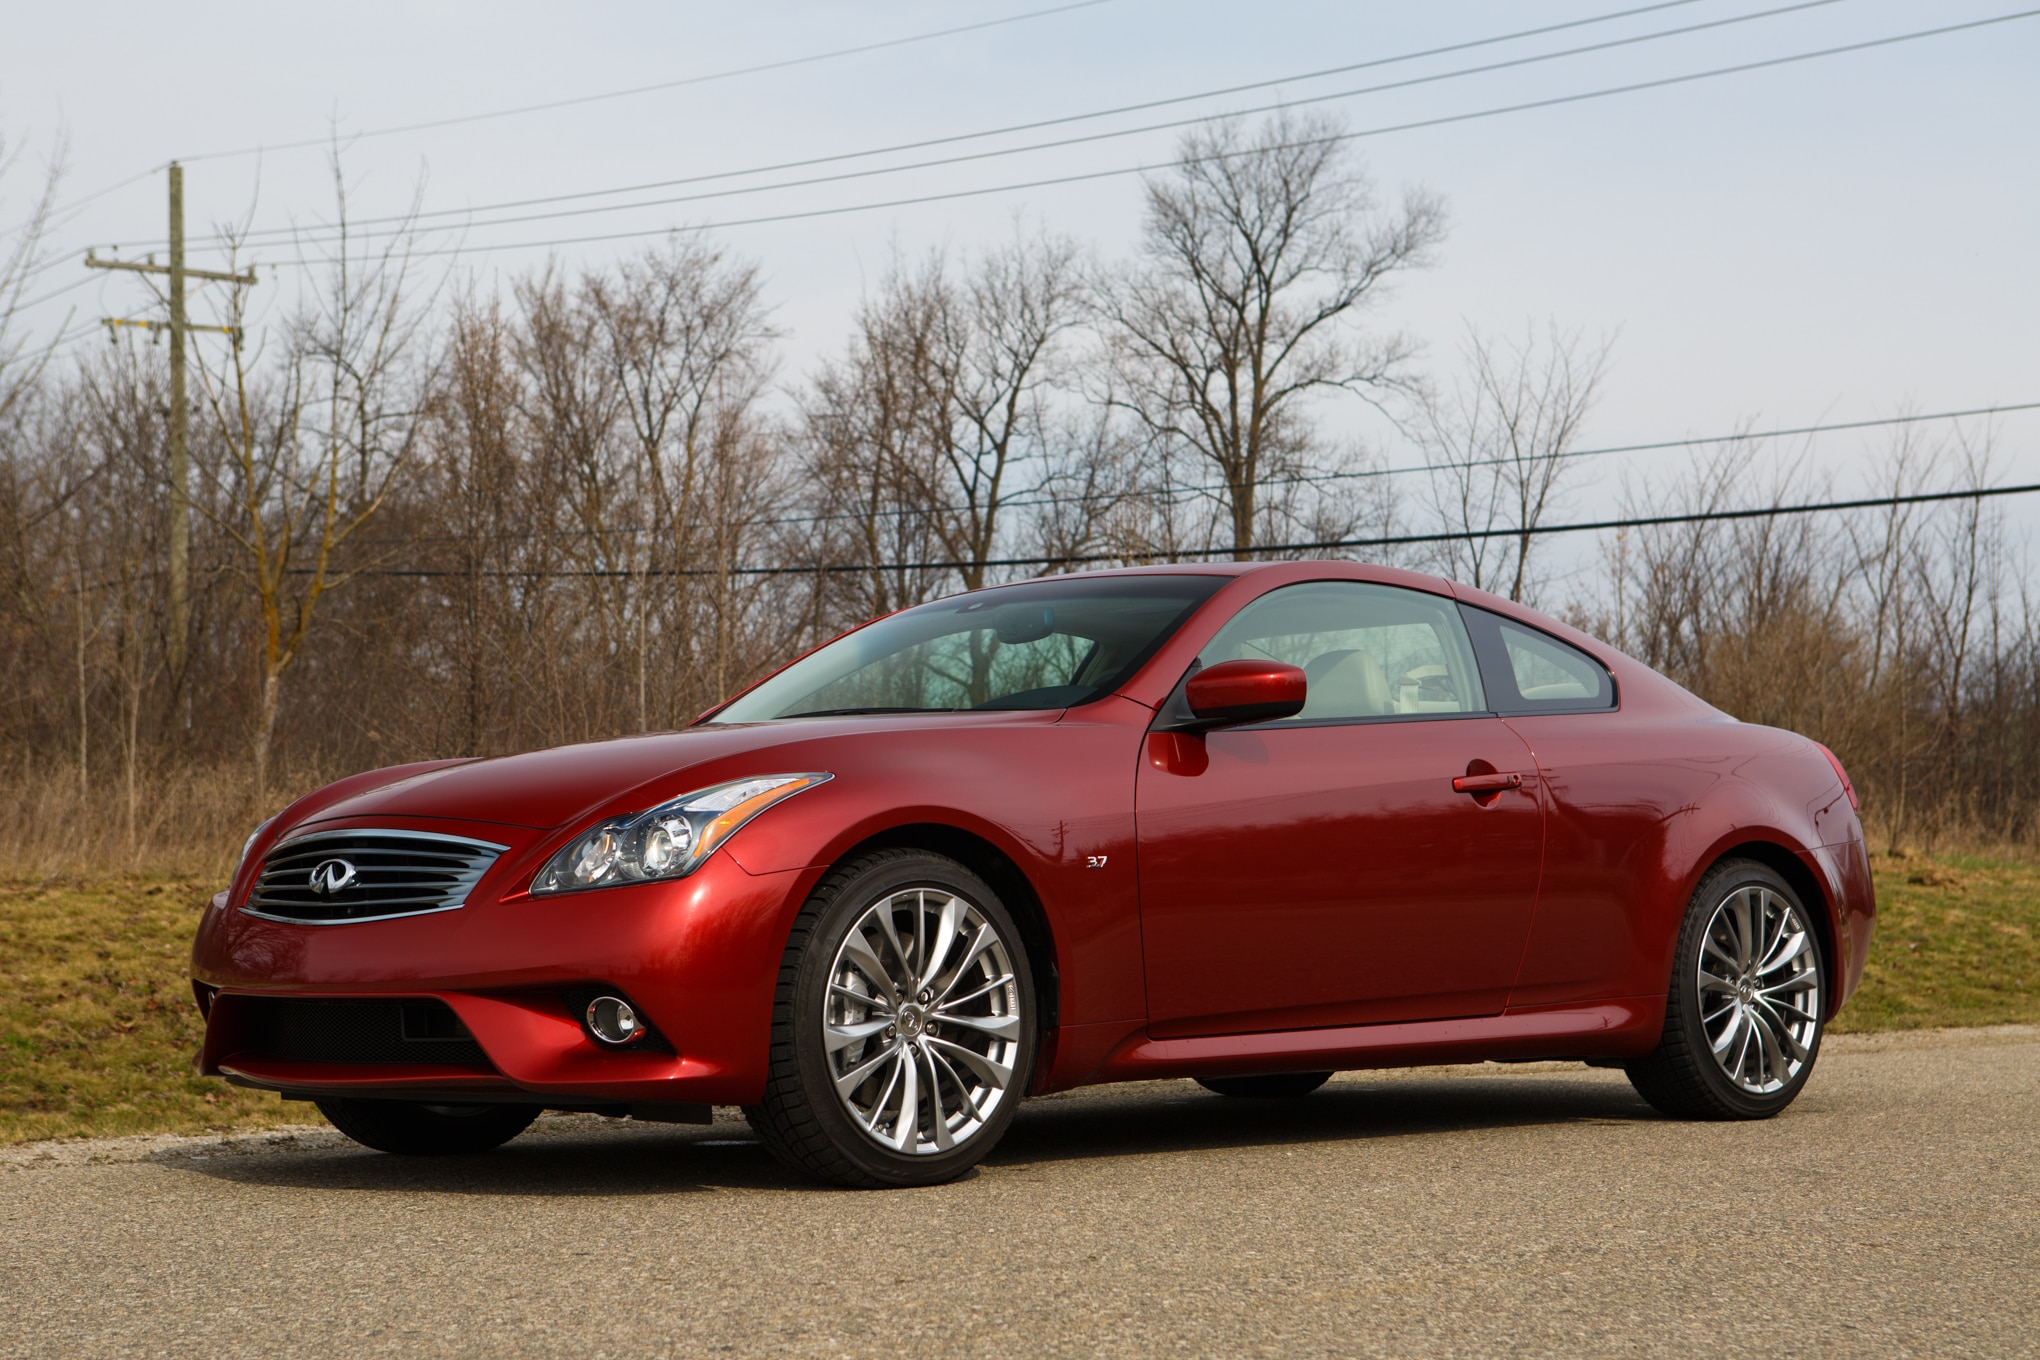 New Infiniti G35 Coupe >> 2014 Infiniti Q60 Coupe: Around the Block